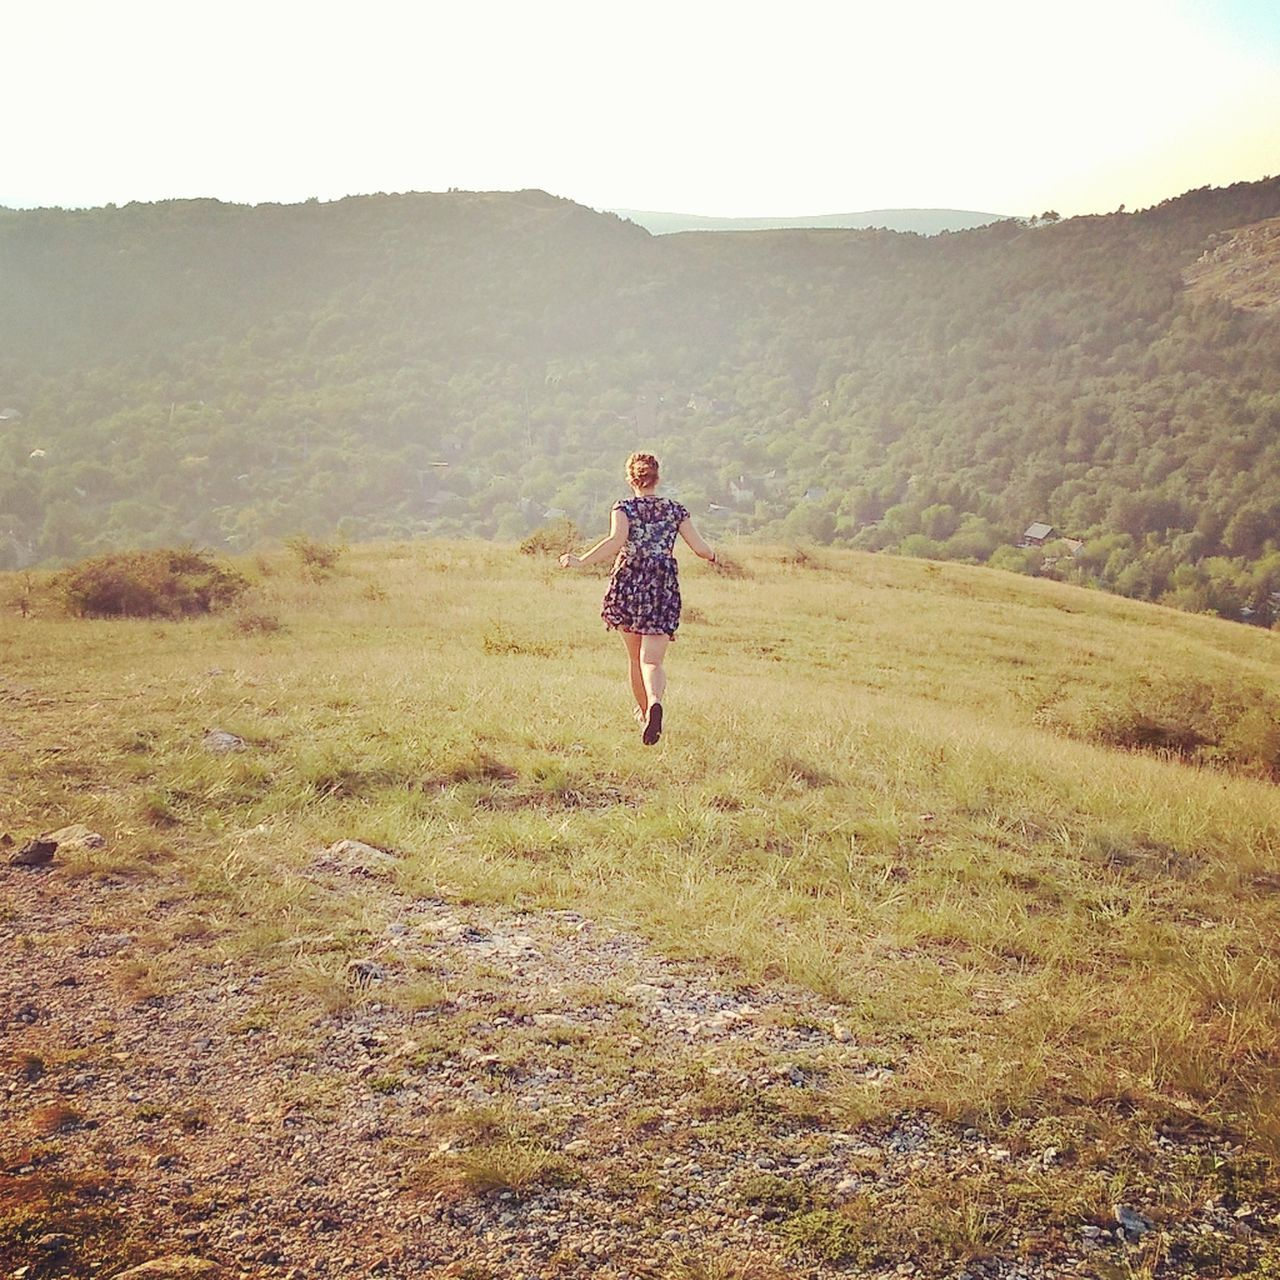 #girl #lumiaphoto #Nature  #running#santesteve#vidasana#fito#vilanova #sunset #sun #clouds #skylovers #sky #nature #beautifulinnature #naturalbeauty #photography #landscape #sunshine Adventure Beauty In Nature Carefree Cheerful Child Day Fog Freedom Full Length Grass Happiness Landscape Nature One Person Outdoors People Walking